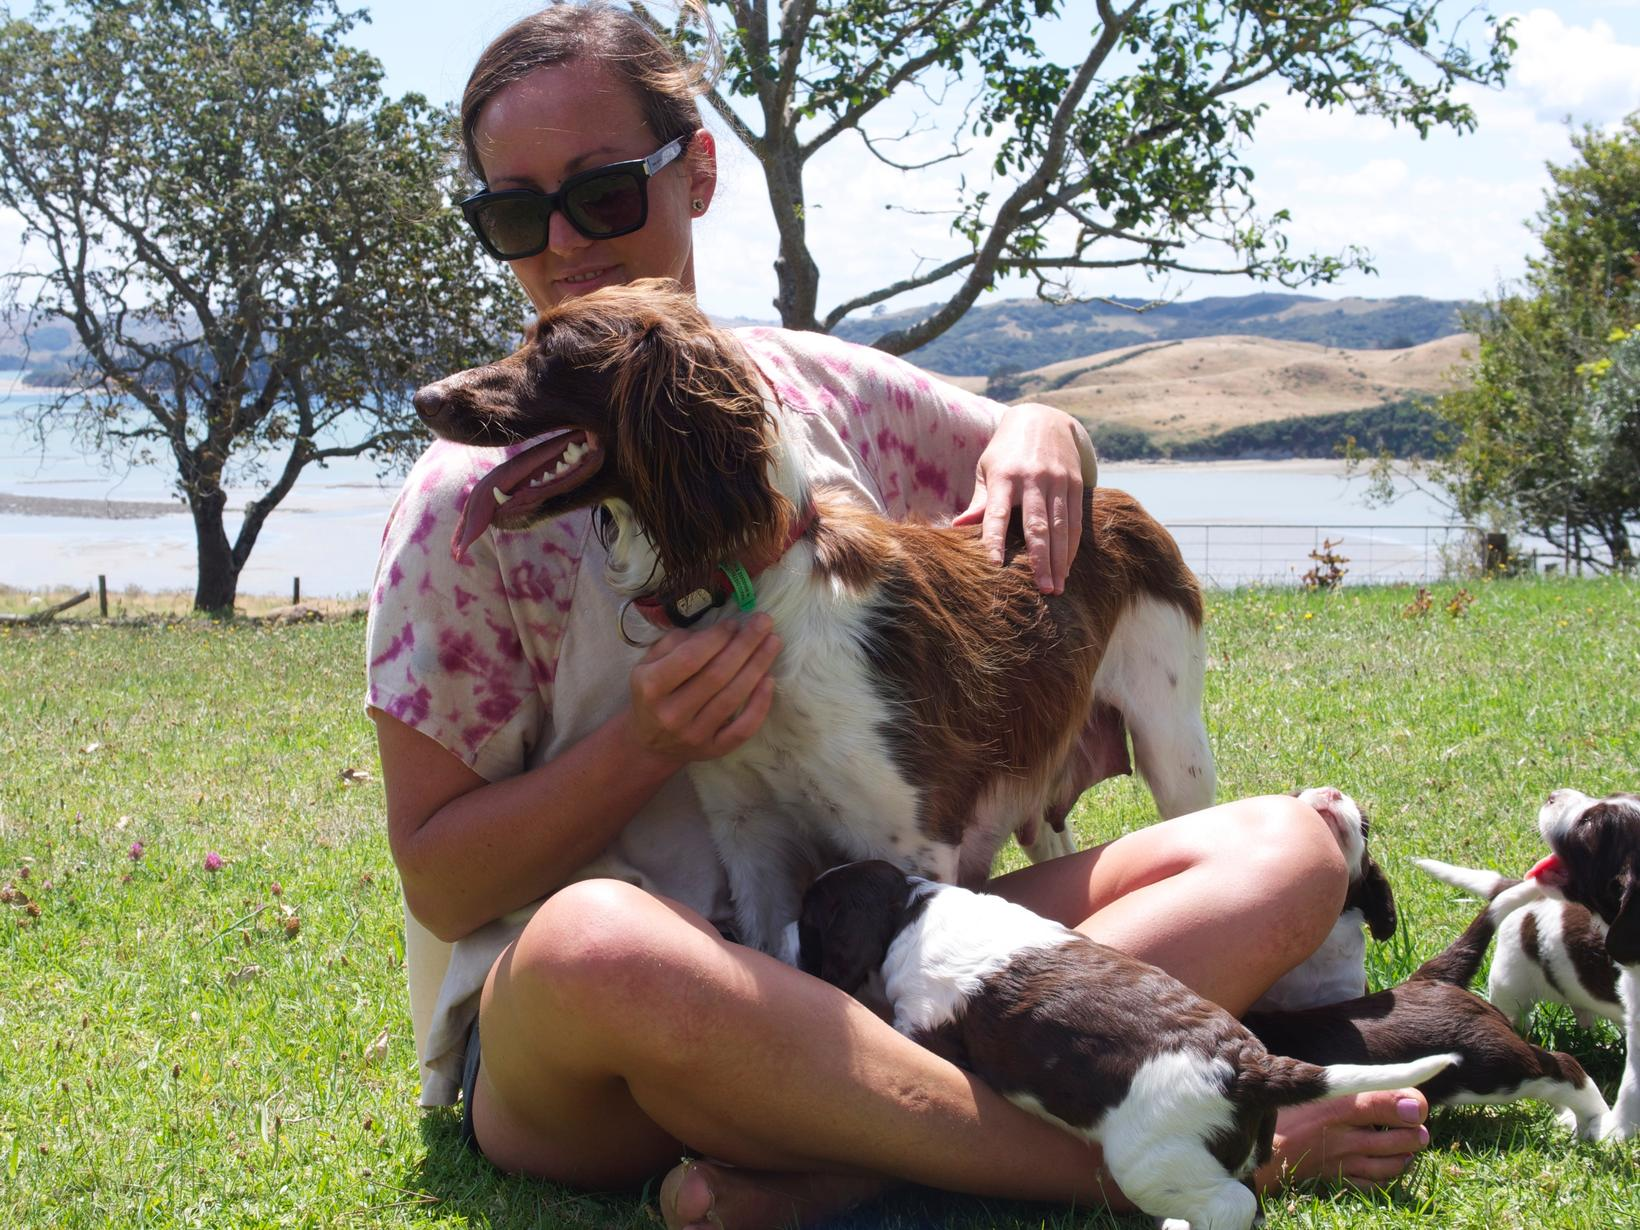 Clare from Cambridge, New Zealand